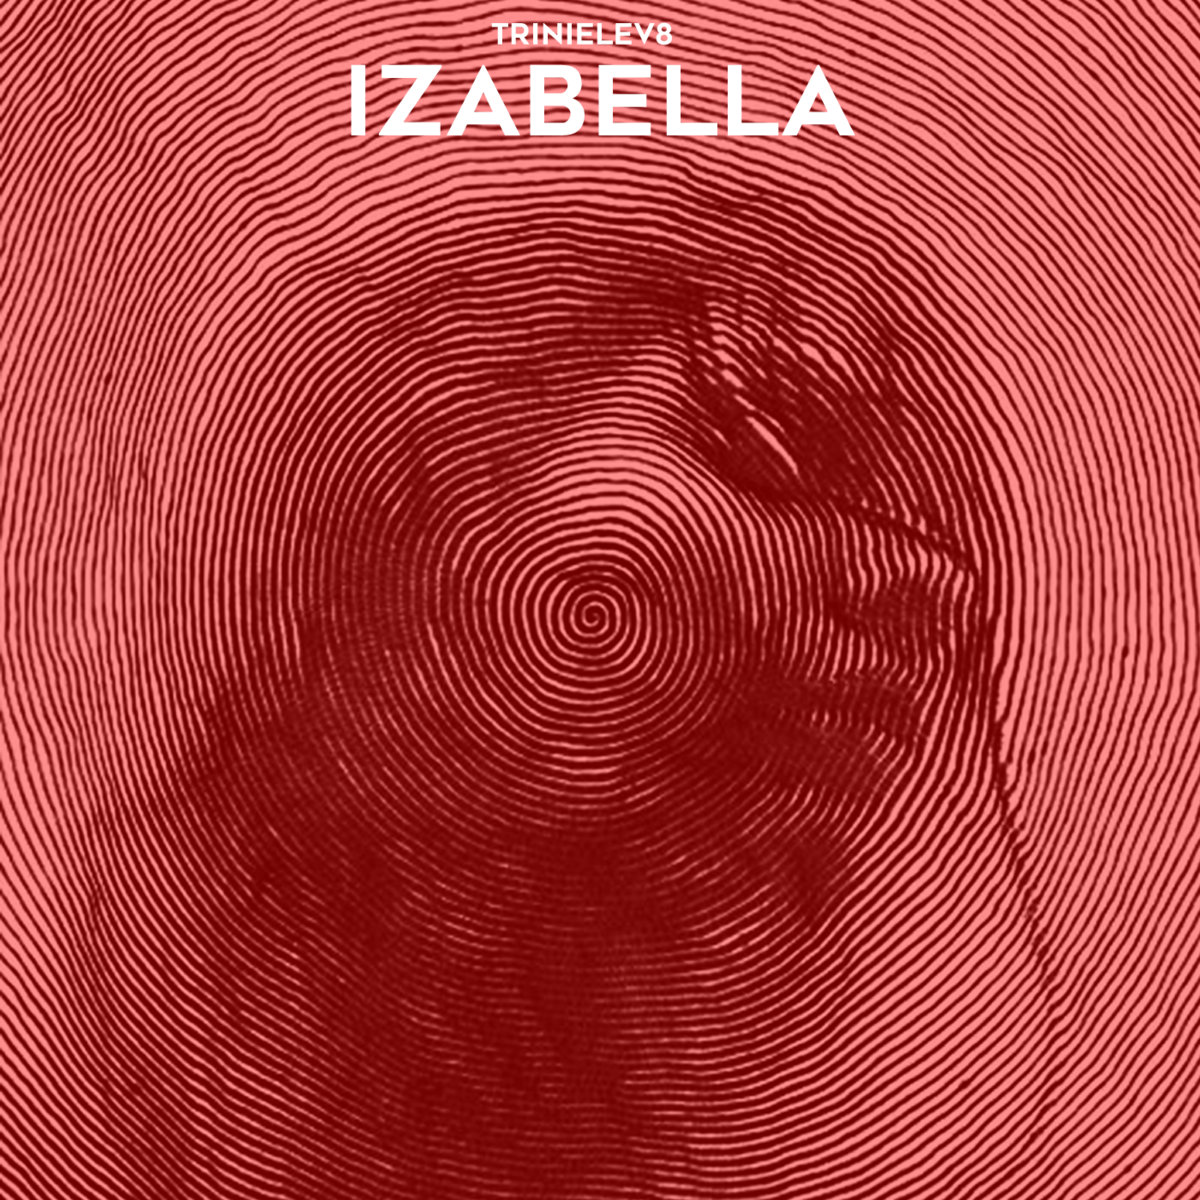 #IZABELLA (Domestic Violence Awareness) by Trini Elev8,AbombMusic